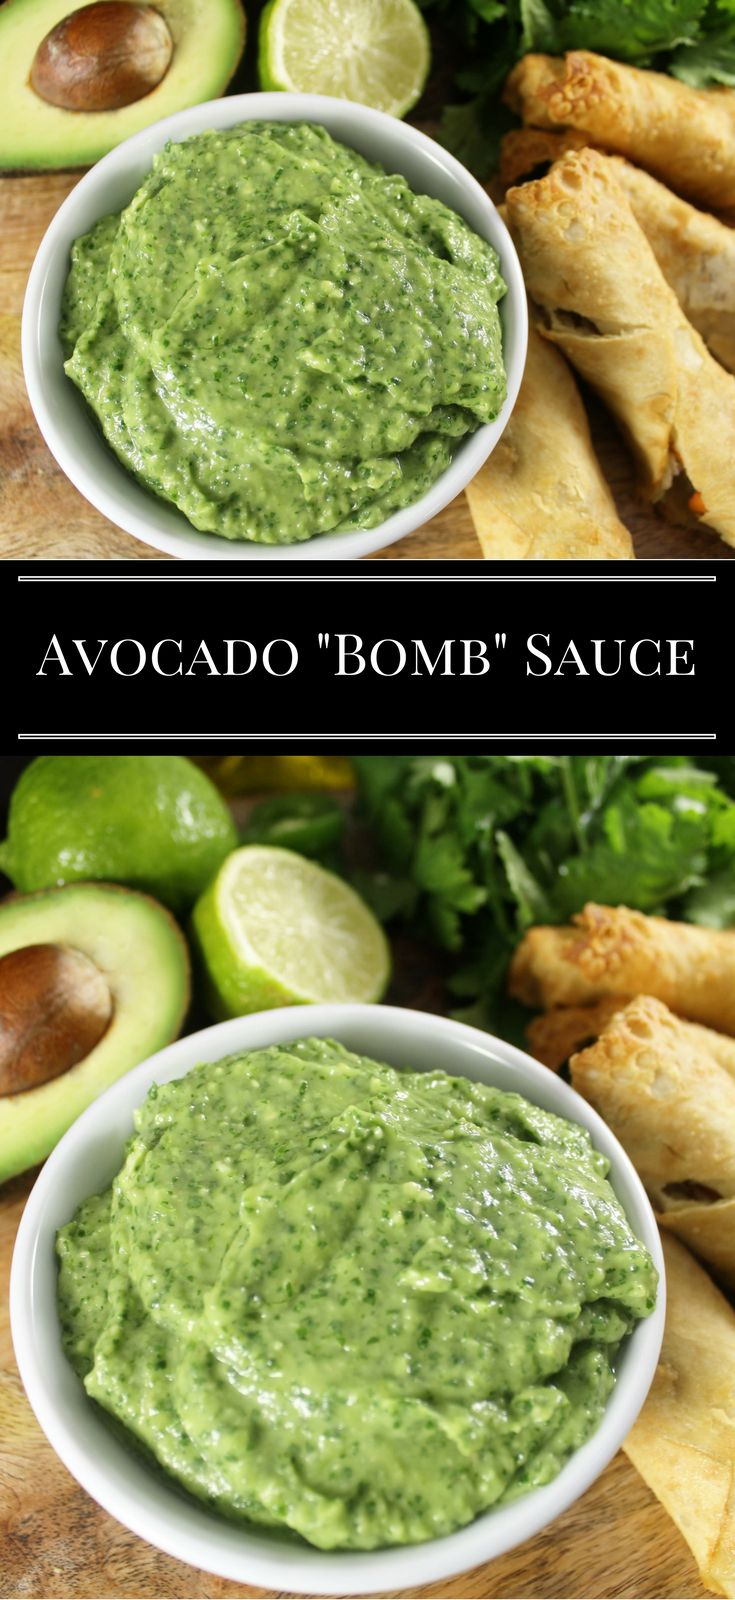 Avocado Bomb Sauce | Dip | Spicy Sauce | Healthy Food